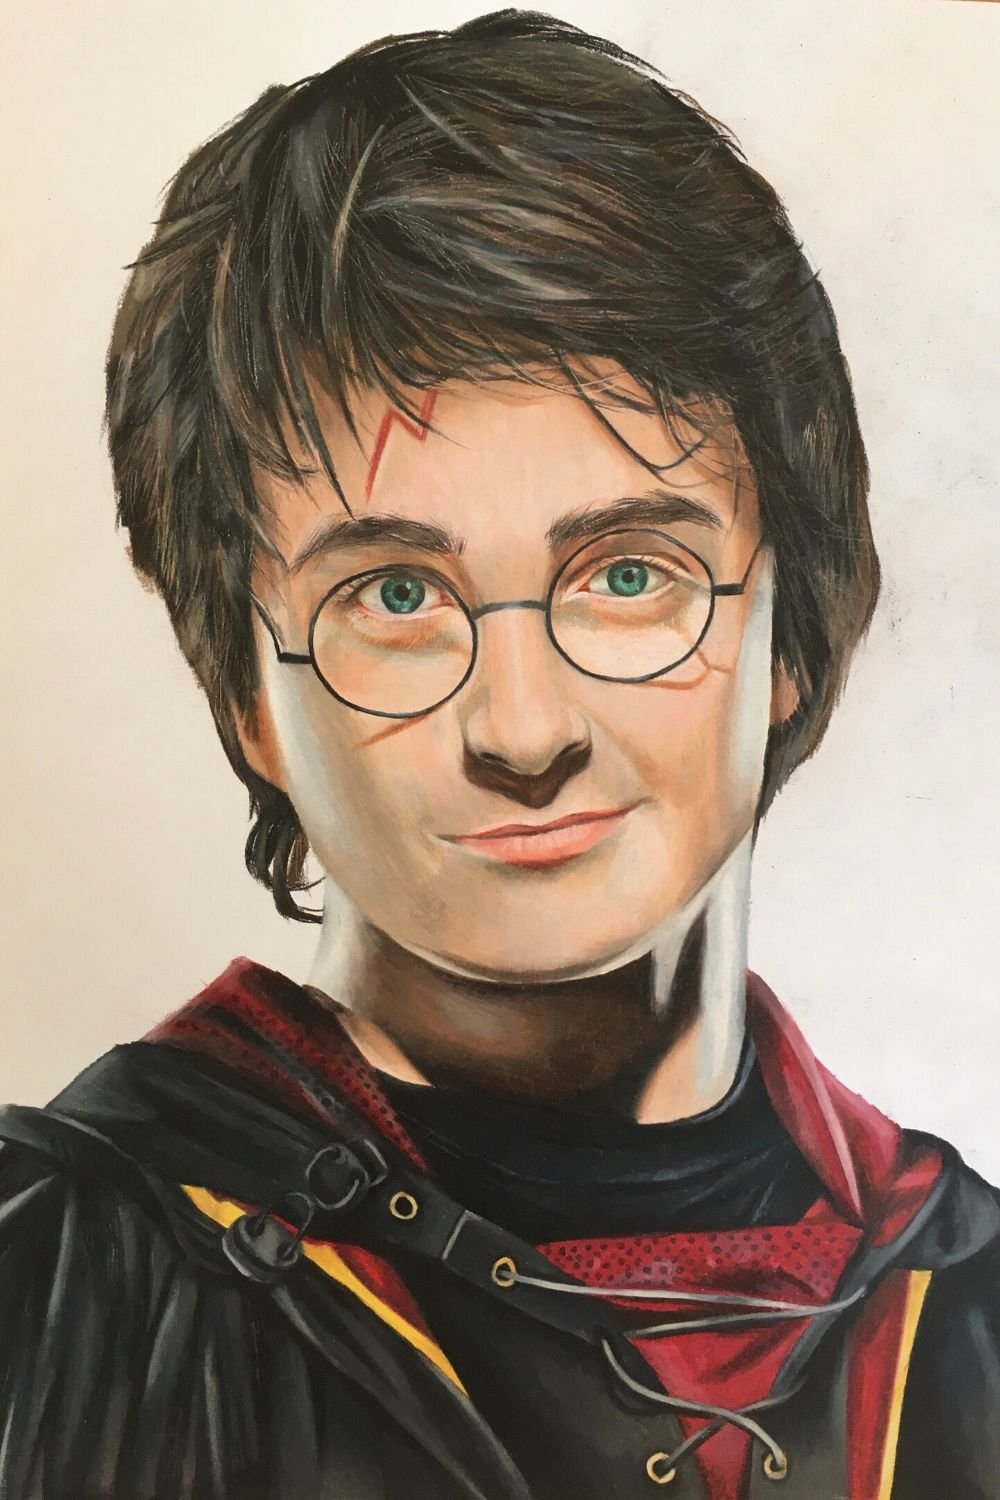 Realistic Drawing Of Harry Potter Colored Pencil Portrait Realistic Drawings Harry Potter